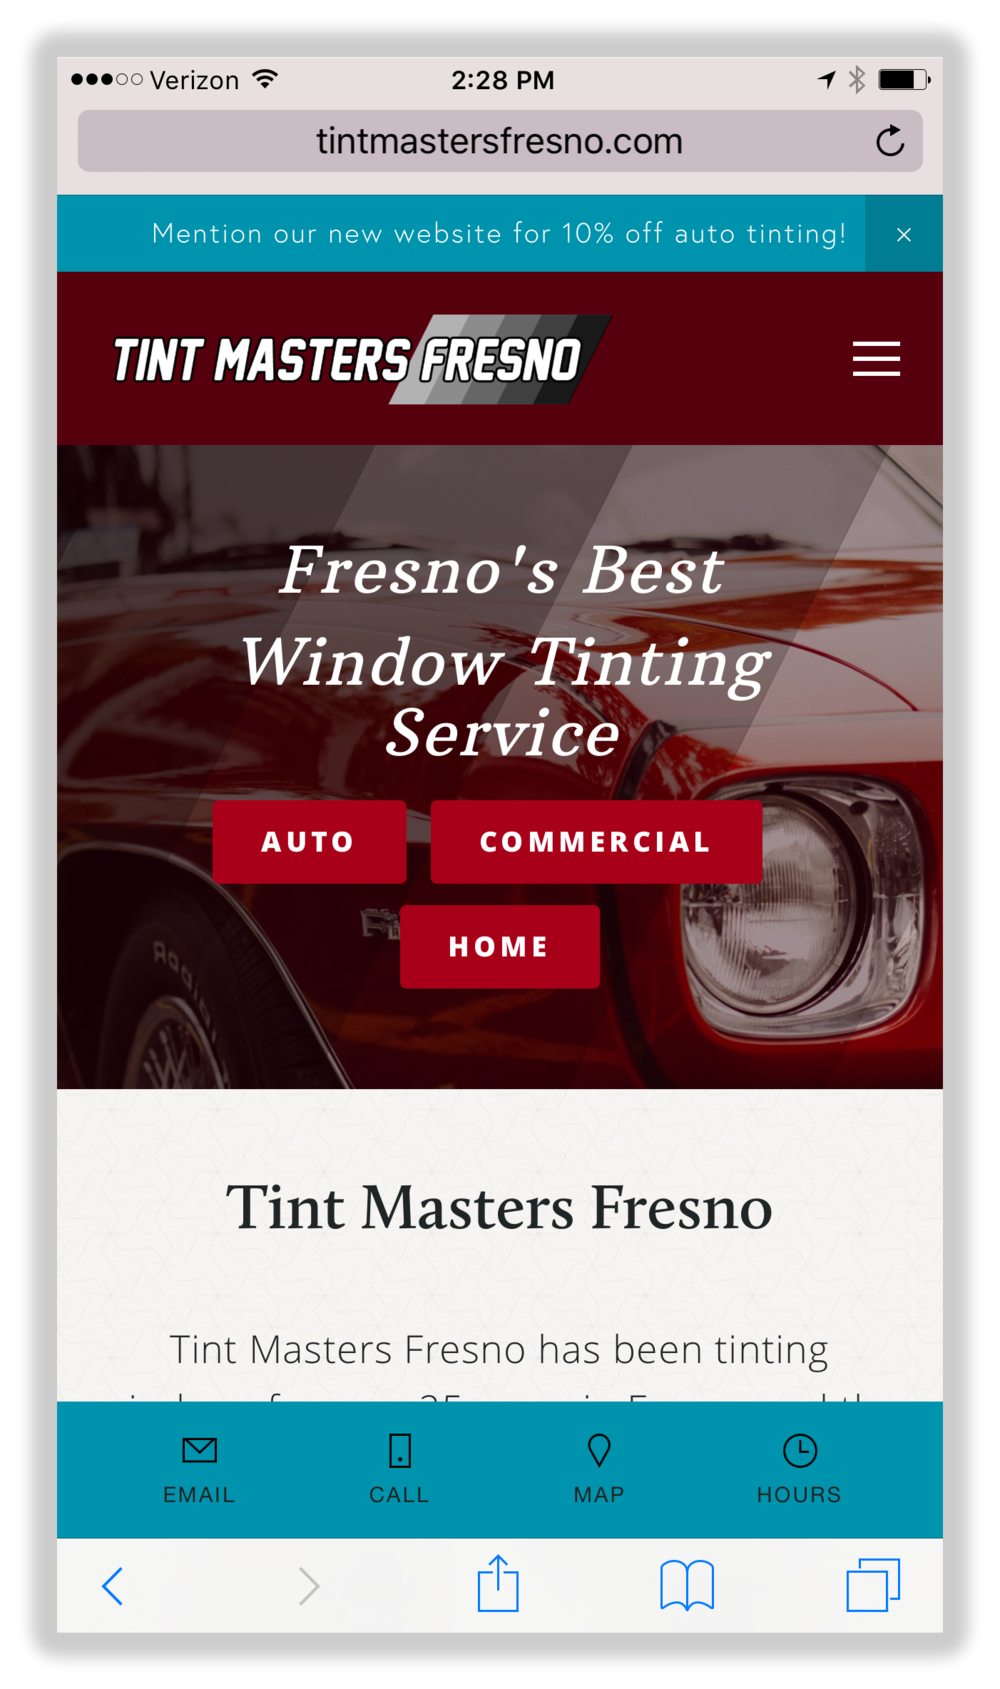 the-chatter-box-guys-web-design-tint-masters-fresno-mobile.png